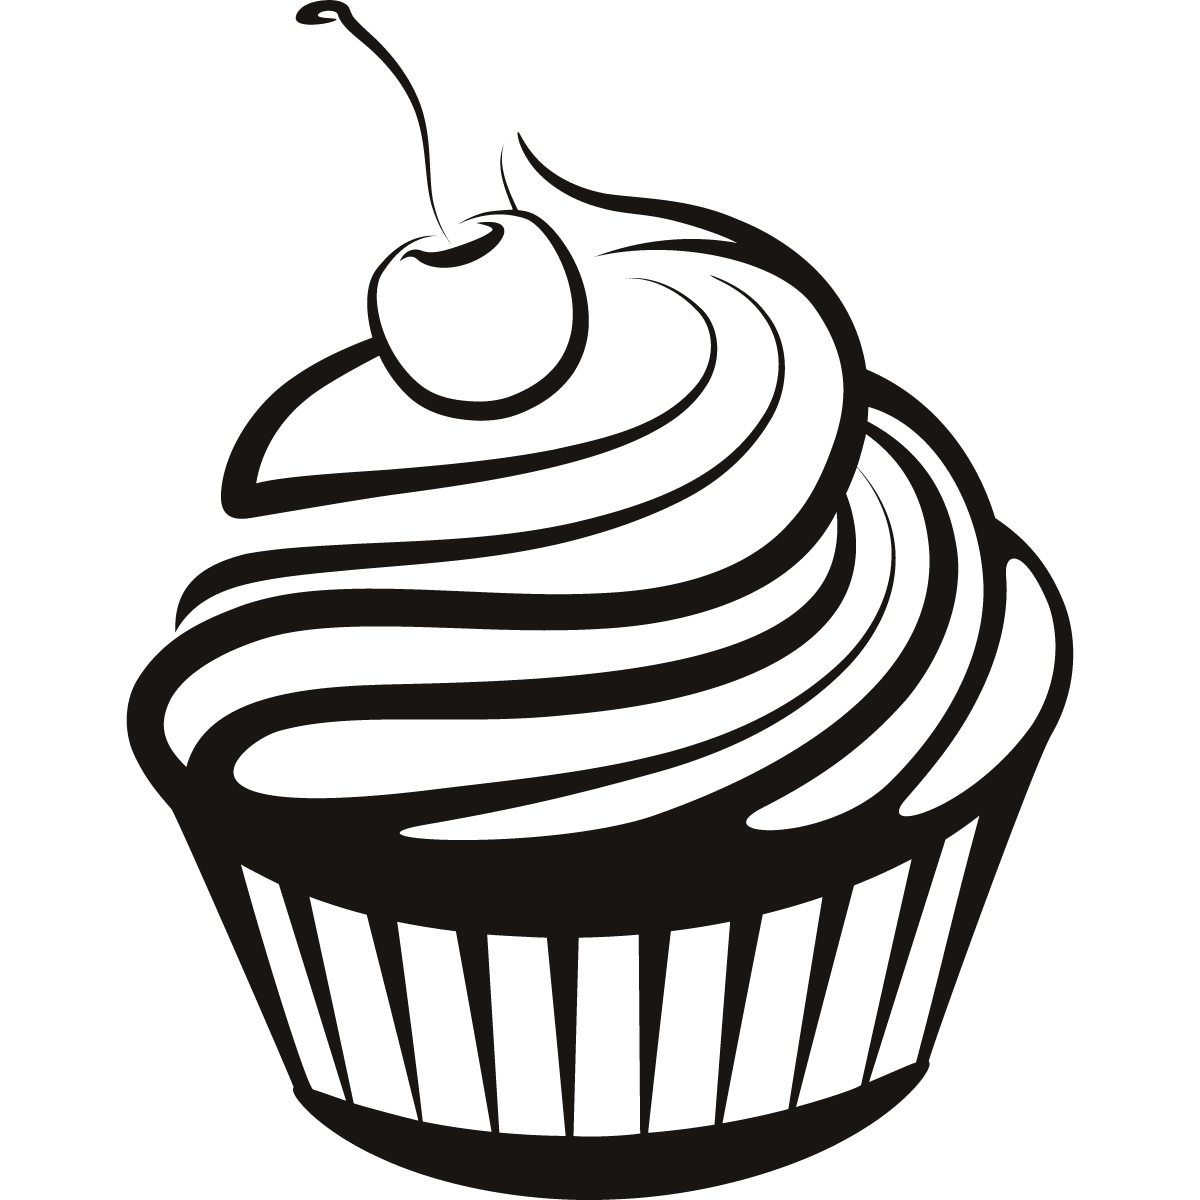 1200x1200 Black And White Cupcake Drawing Cupcake Black And White Cupcake